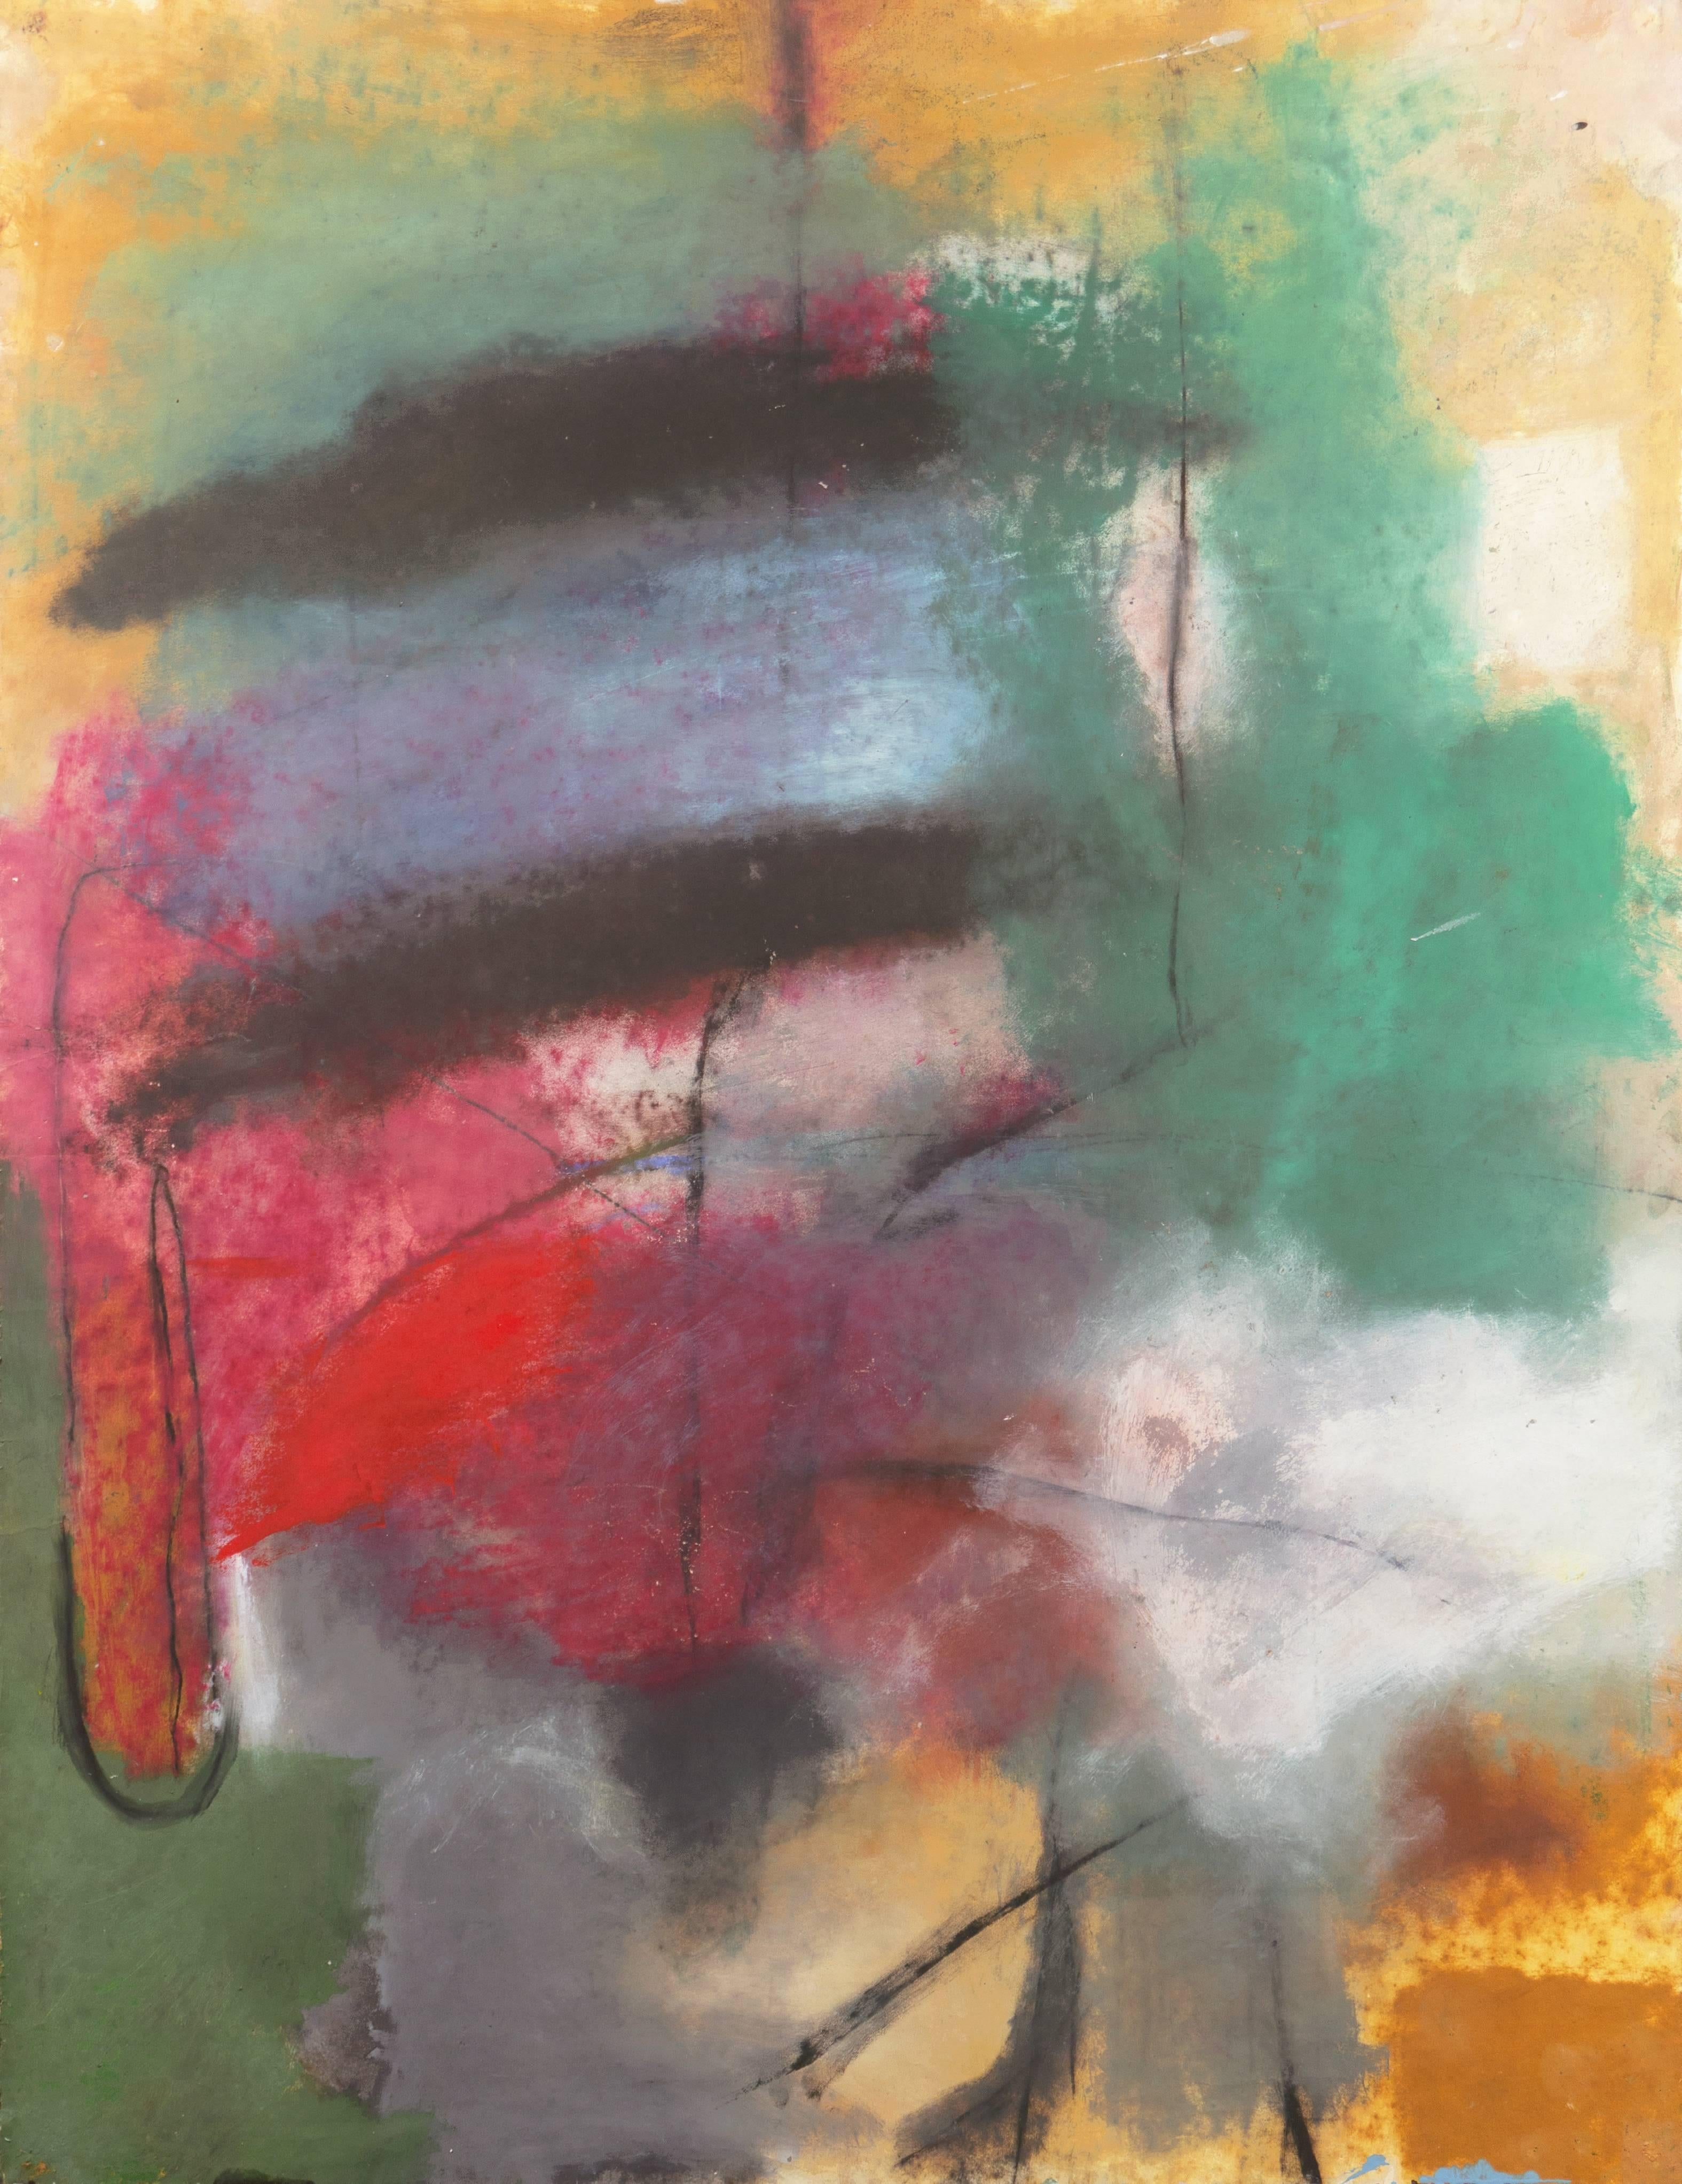 'Abstract in Charcoal and Teal', Large Bay Area Oil, San Francisco Art Institute